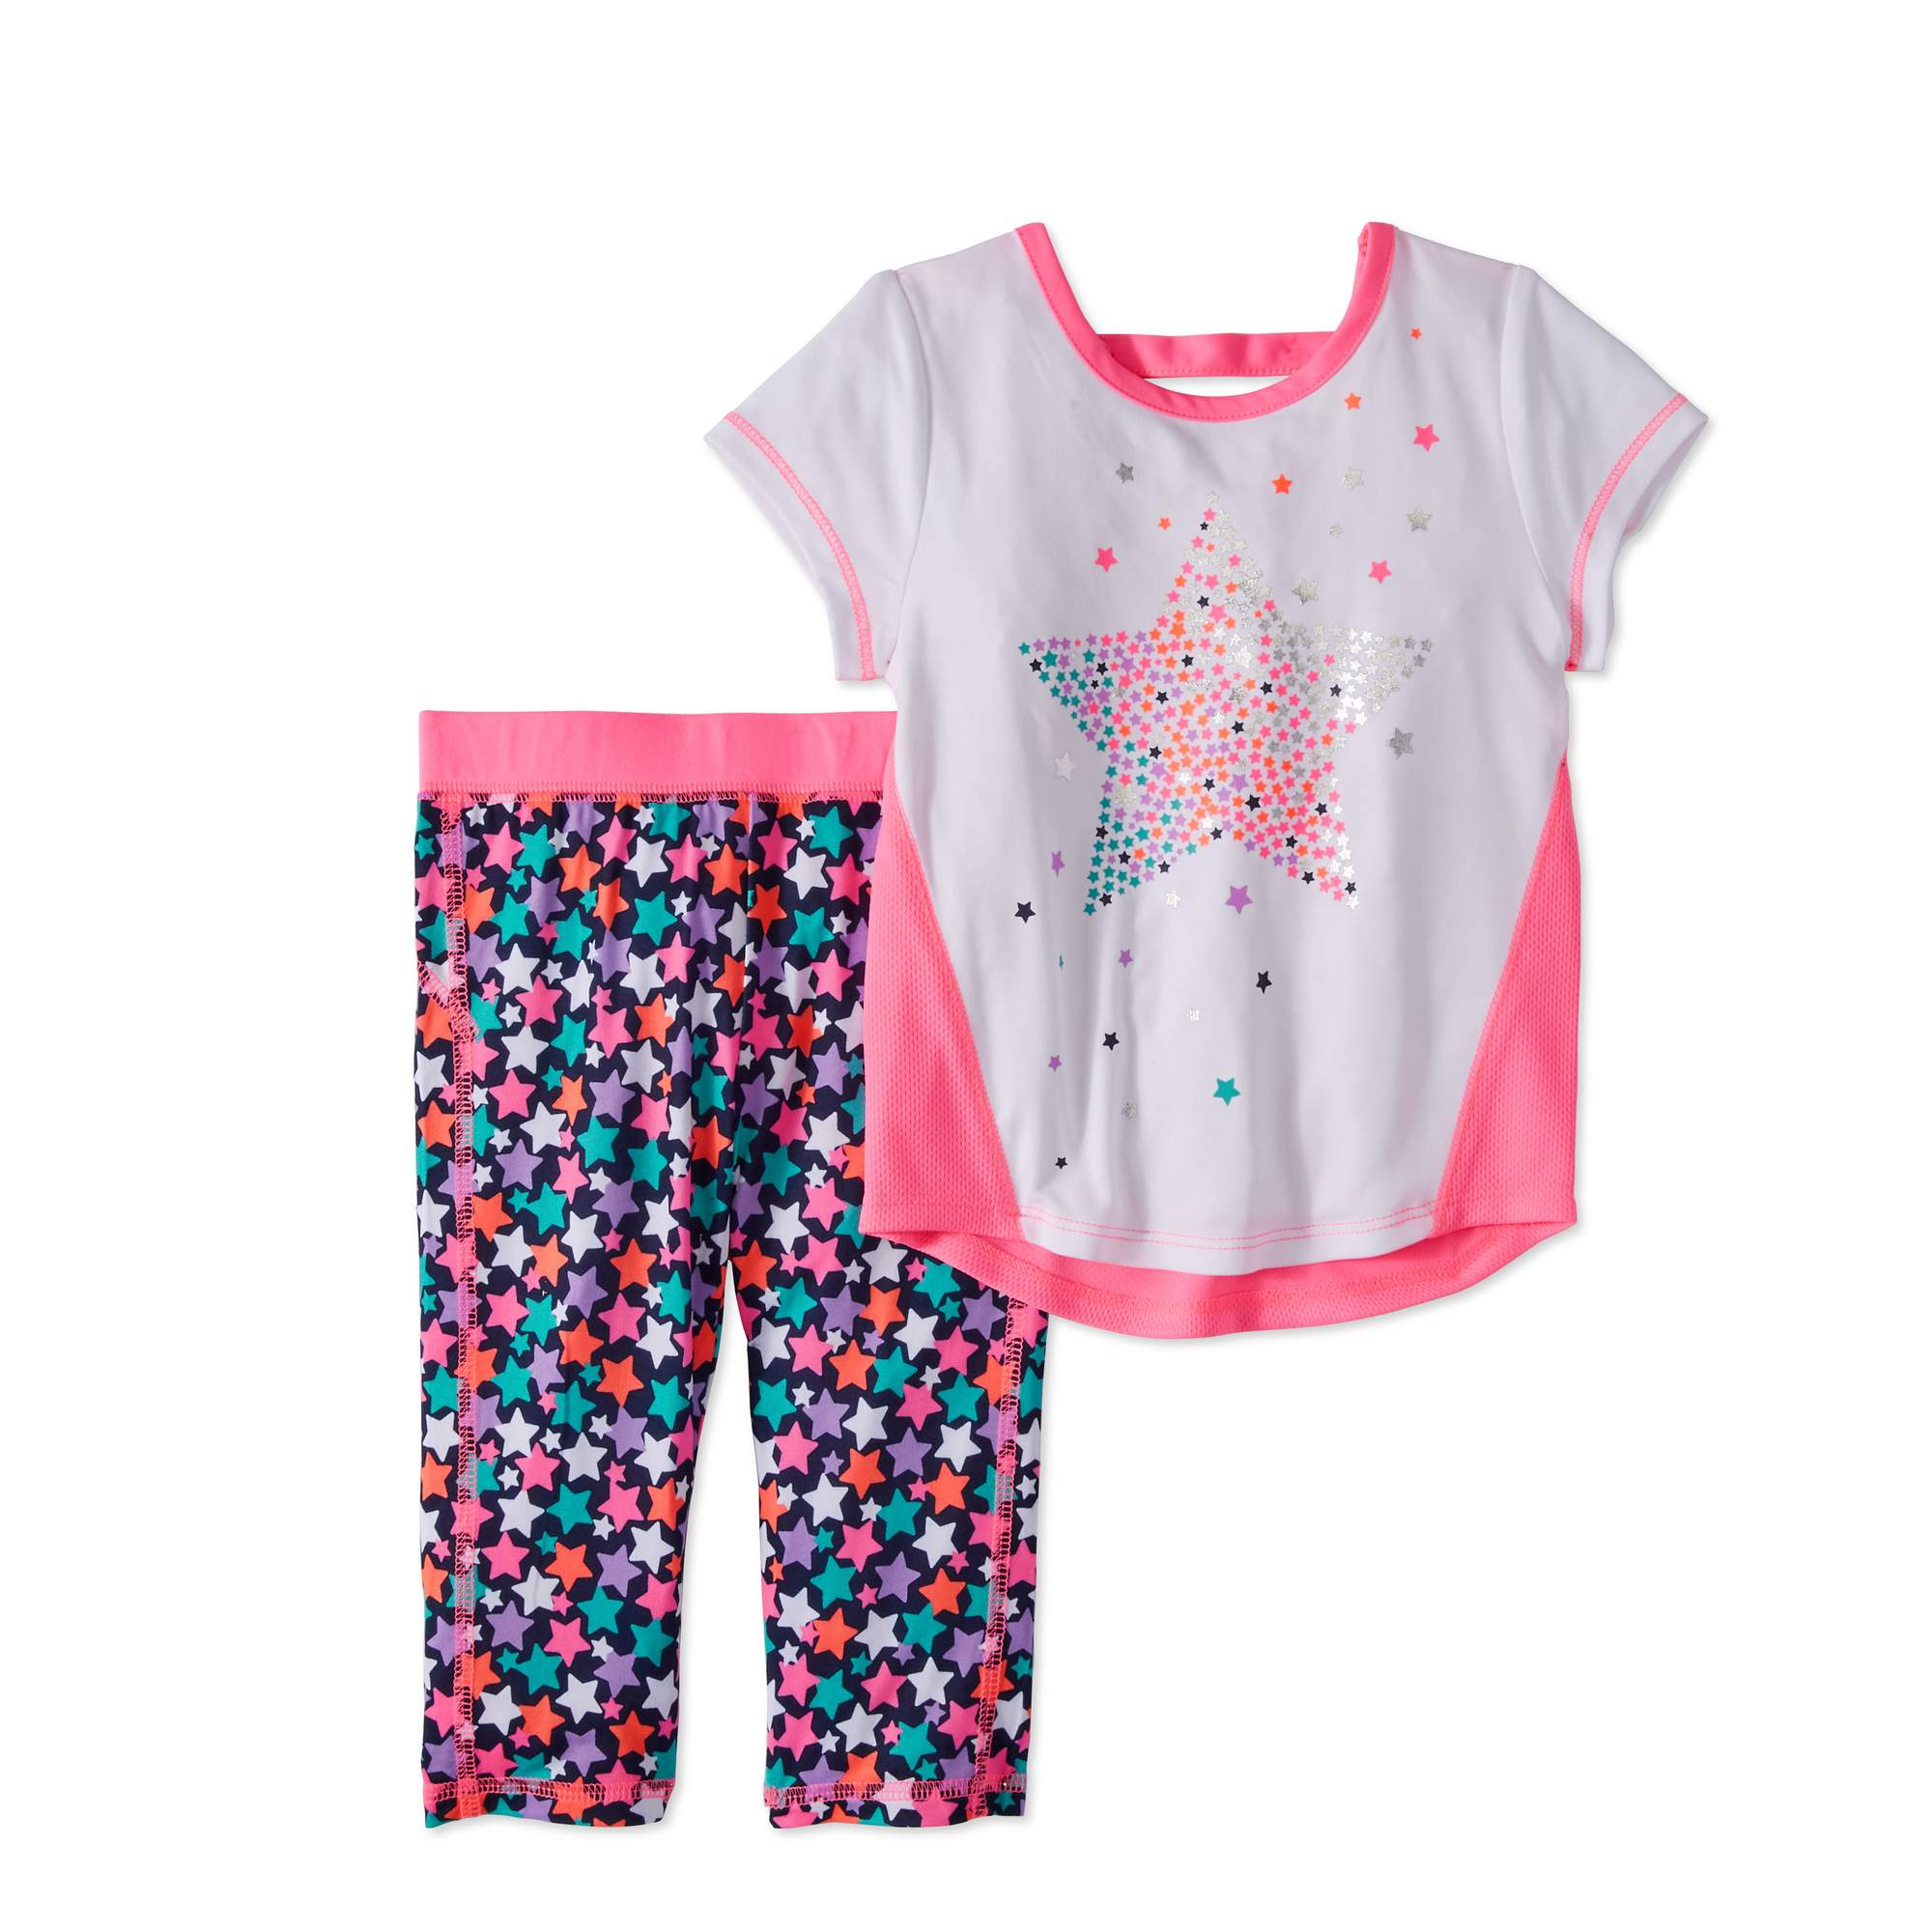 Healthtex Toddler Girl Short Sleeve T-Shirt & Capri Leggings, 2pc Active Outfit Set